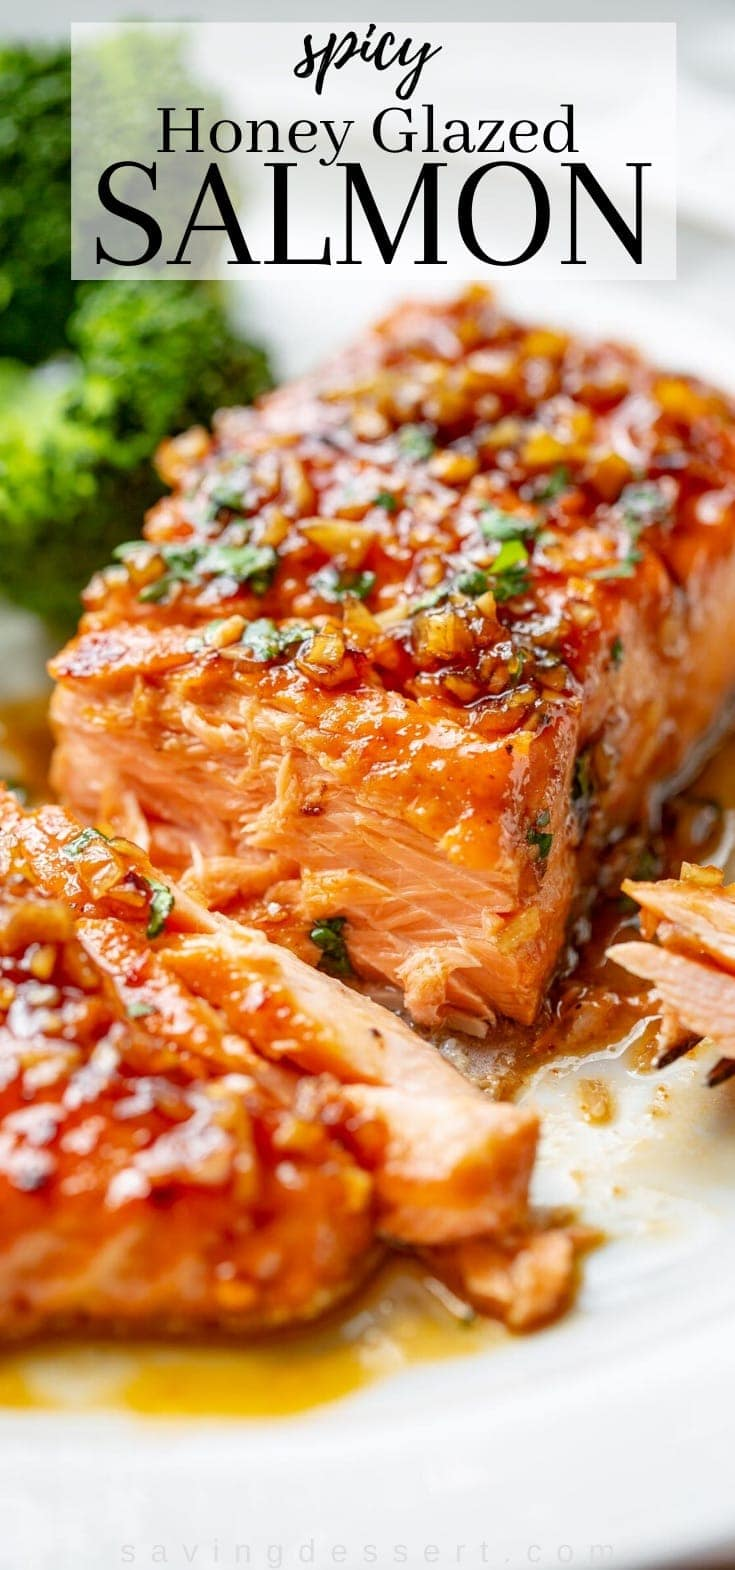 A piece of salmon on a plate with a sticky sweet honey sauce on top